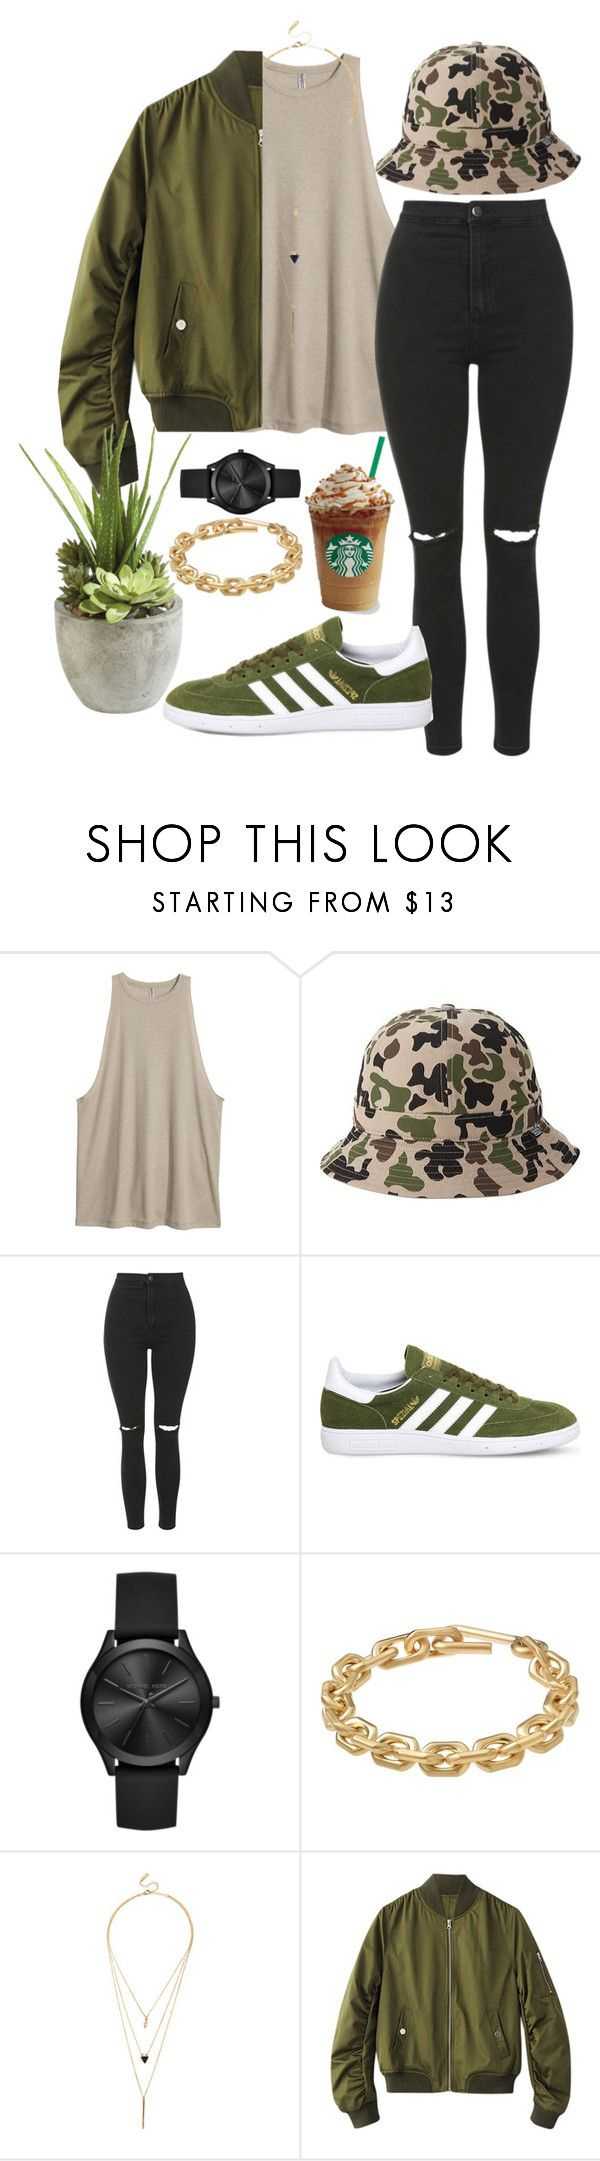 """Camo"" by mikkell ❤ liked on Polyvore featuring Converse, Topshop, adidas, Michael Kors, Calvin Klein, LULUS and Ethan Allen"